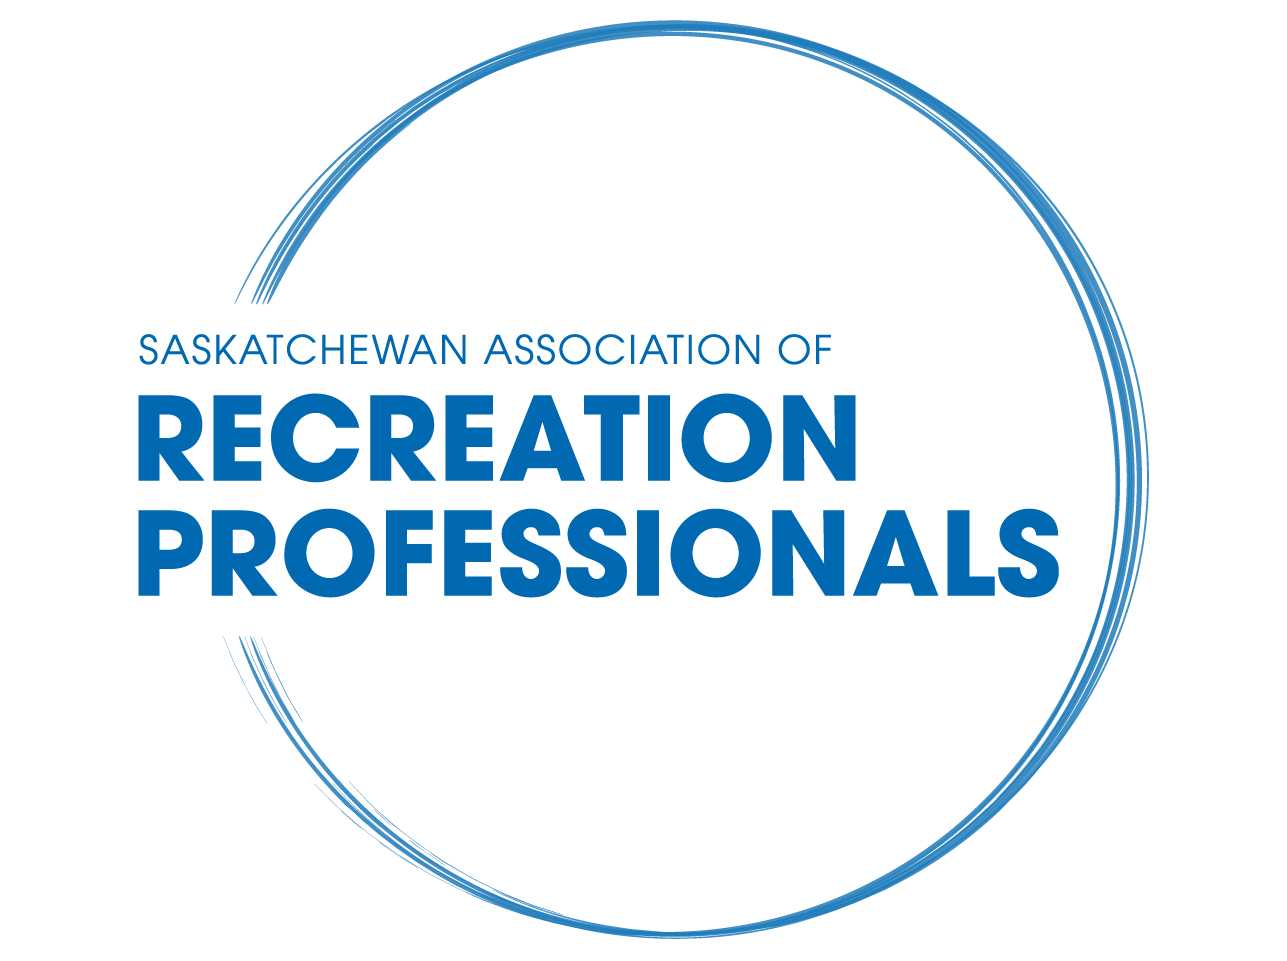 sarp-saskatchewan-association-recreation-professionals-logo